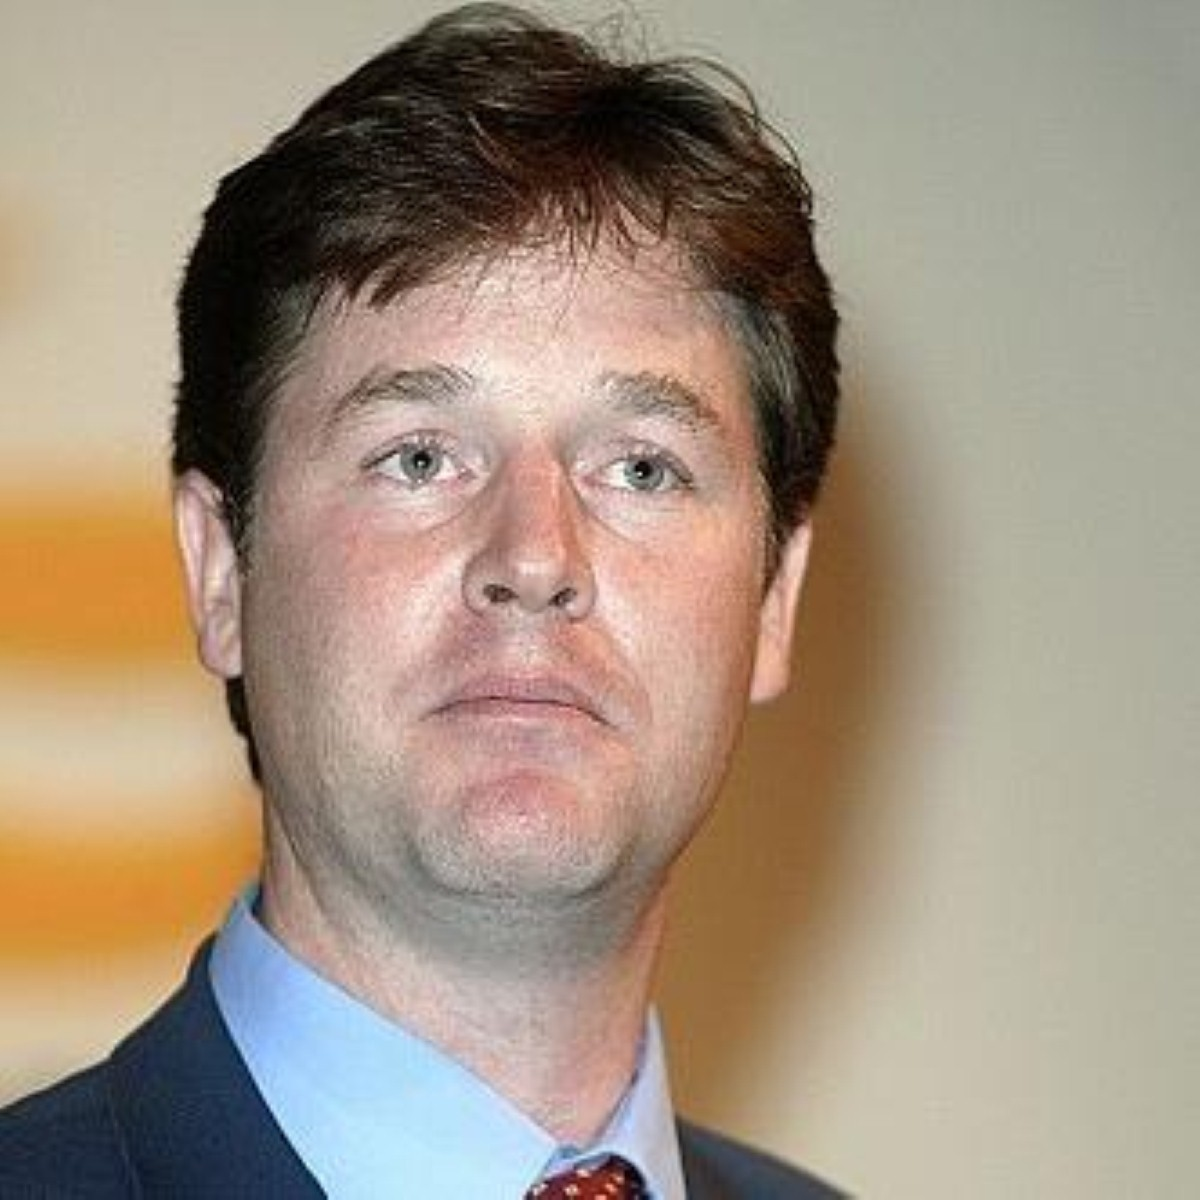 Nick Clegg wants to investigate social mobility more closely